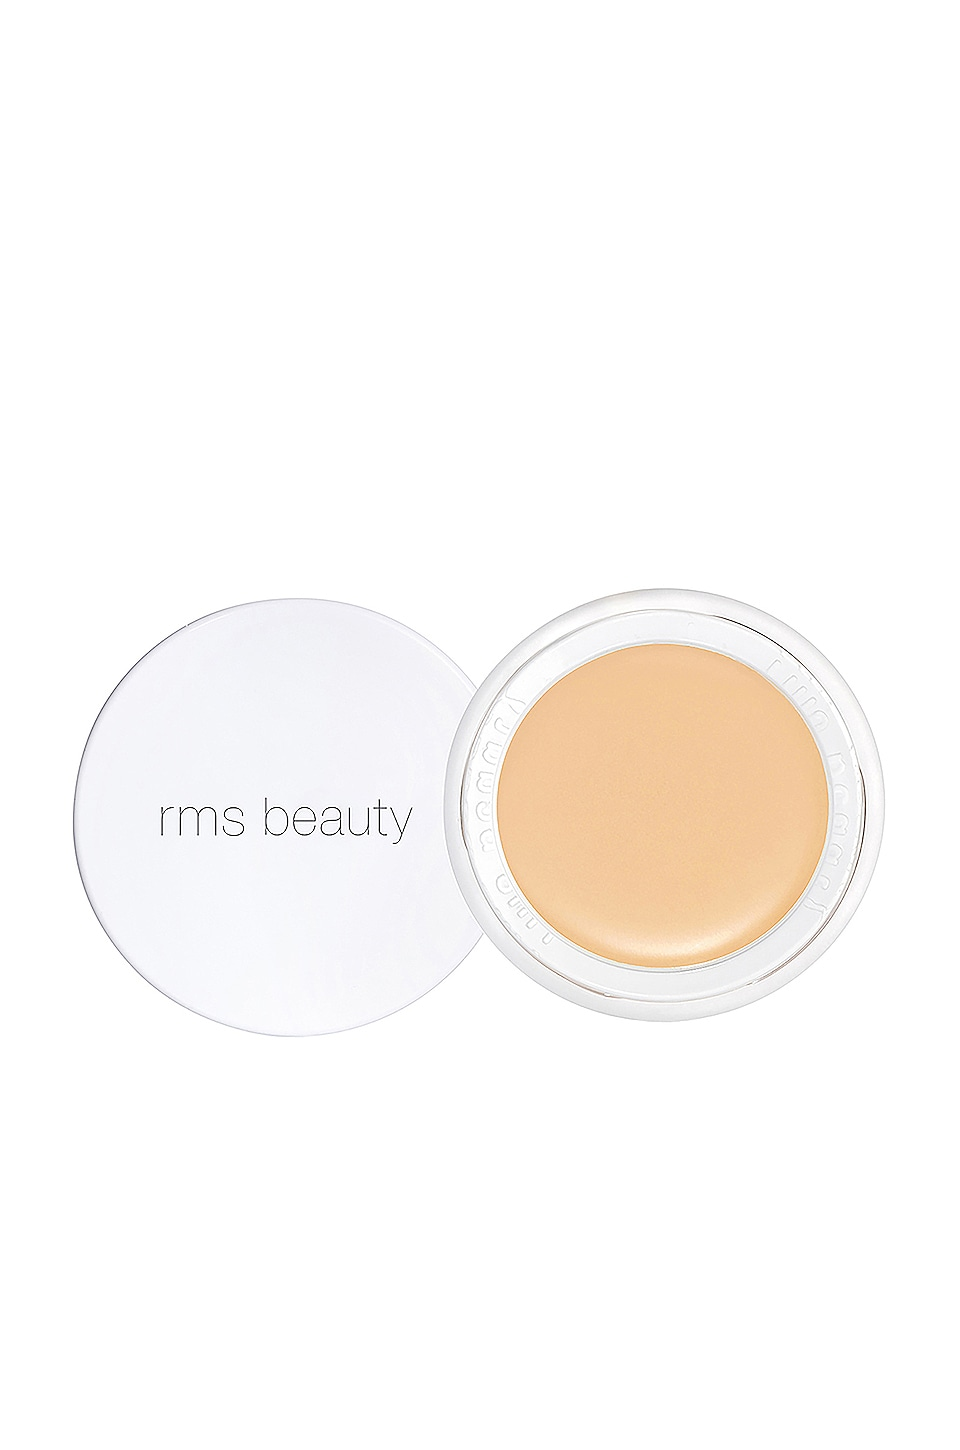 RMS Beauty Uncover Up in 11